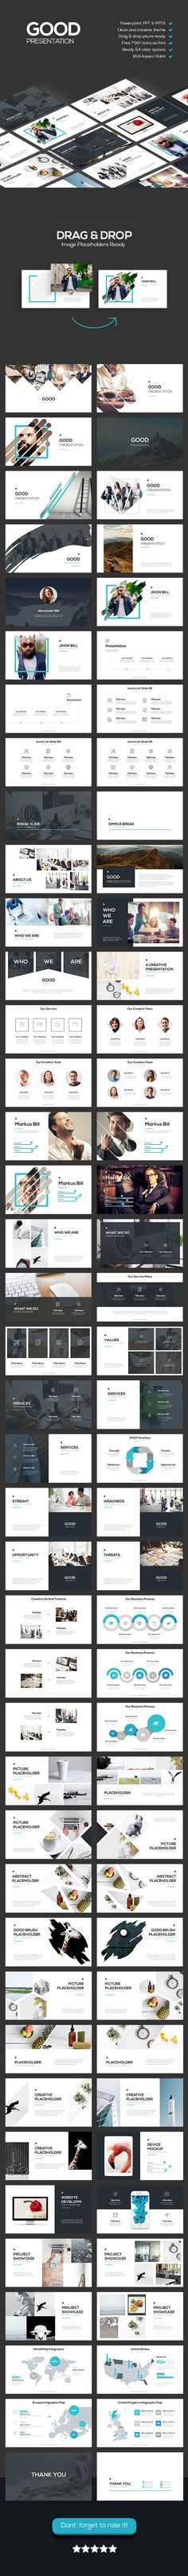 Good - Creative Theme (PowerPoint Templates)